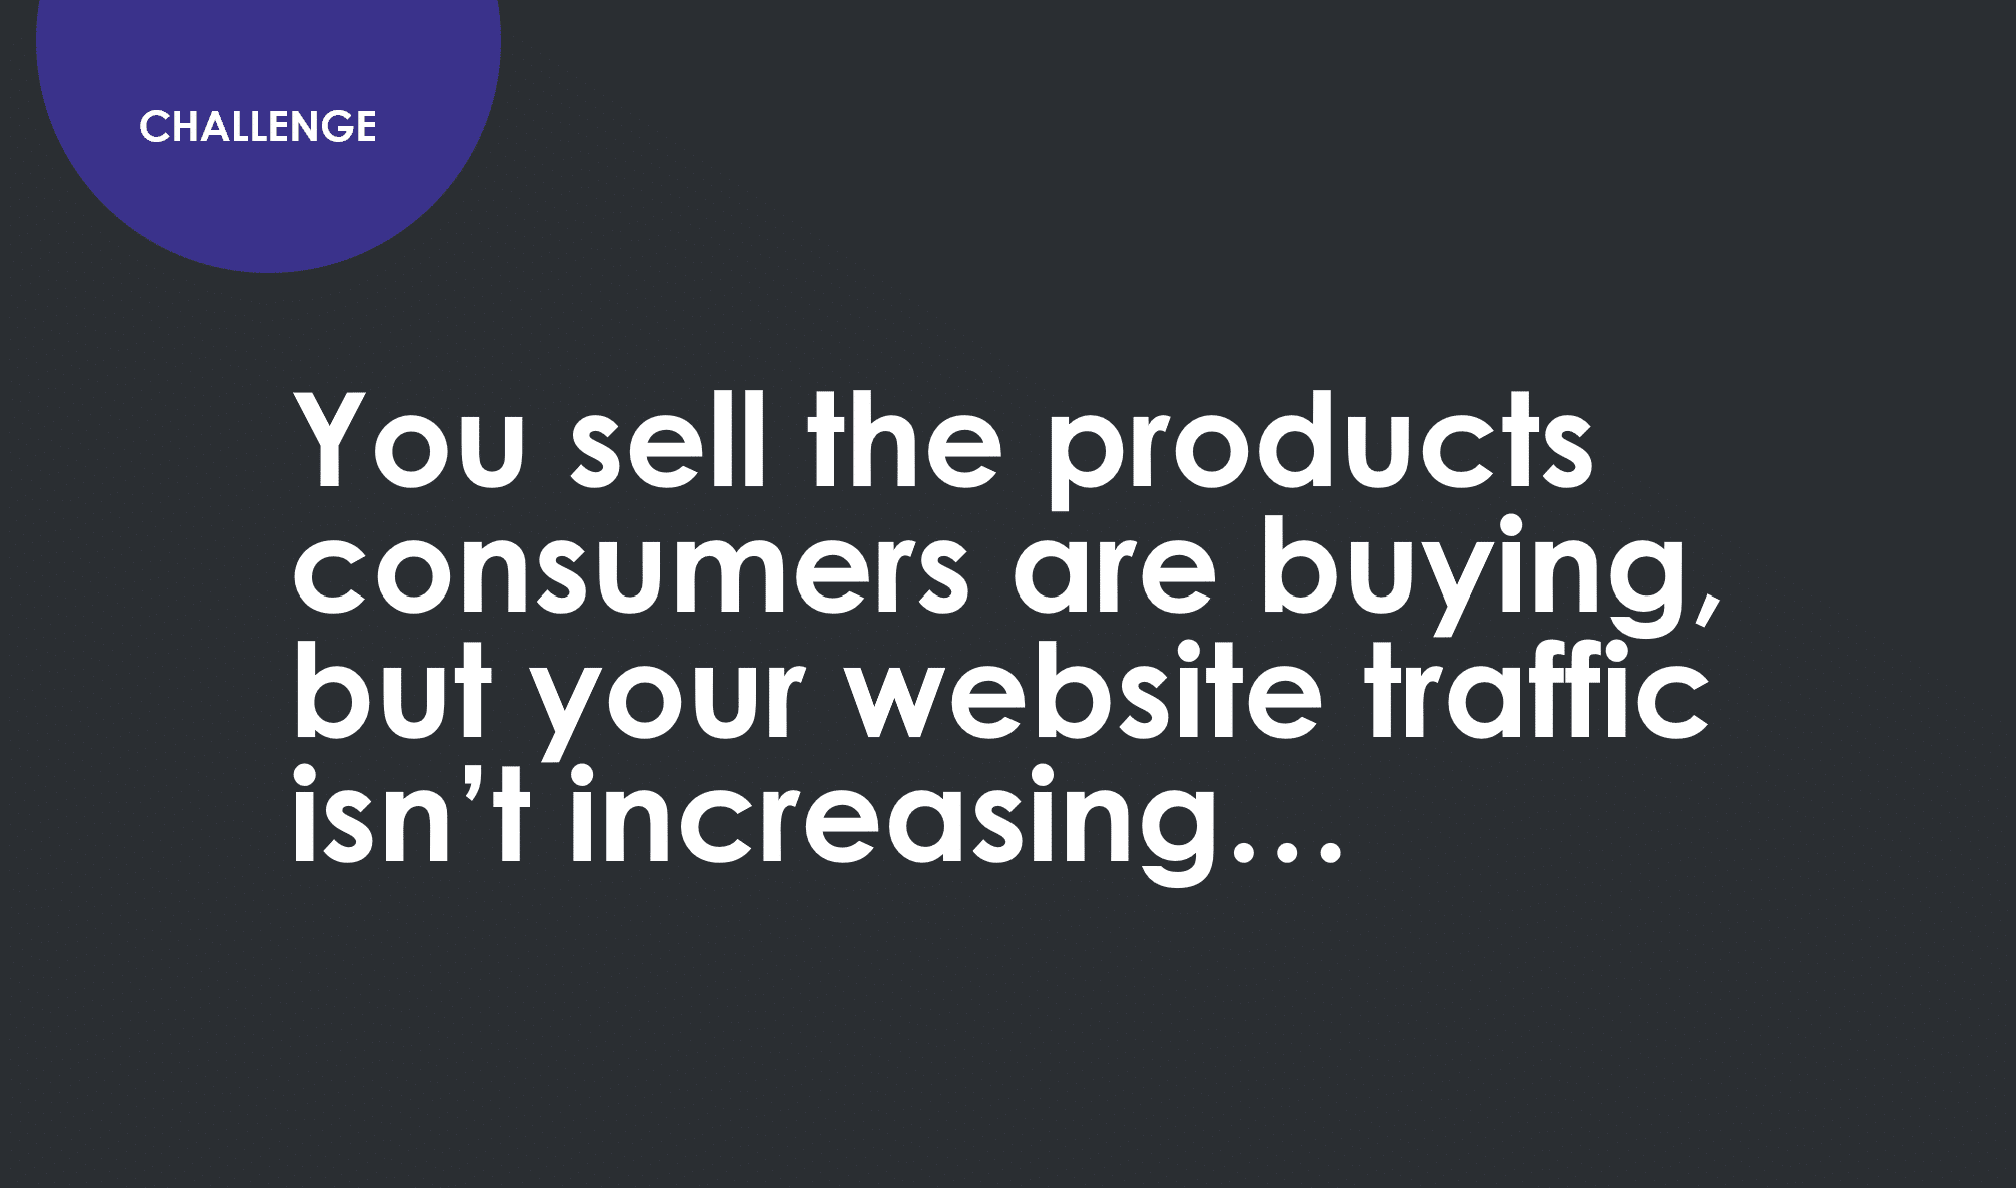 Challenge. You sell the products consumers are buying but your website traffic isn't increasing.